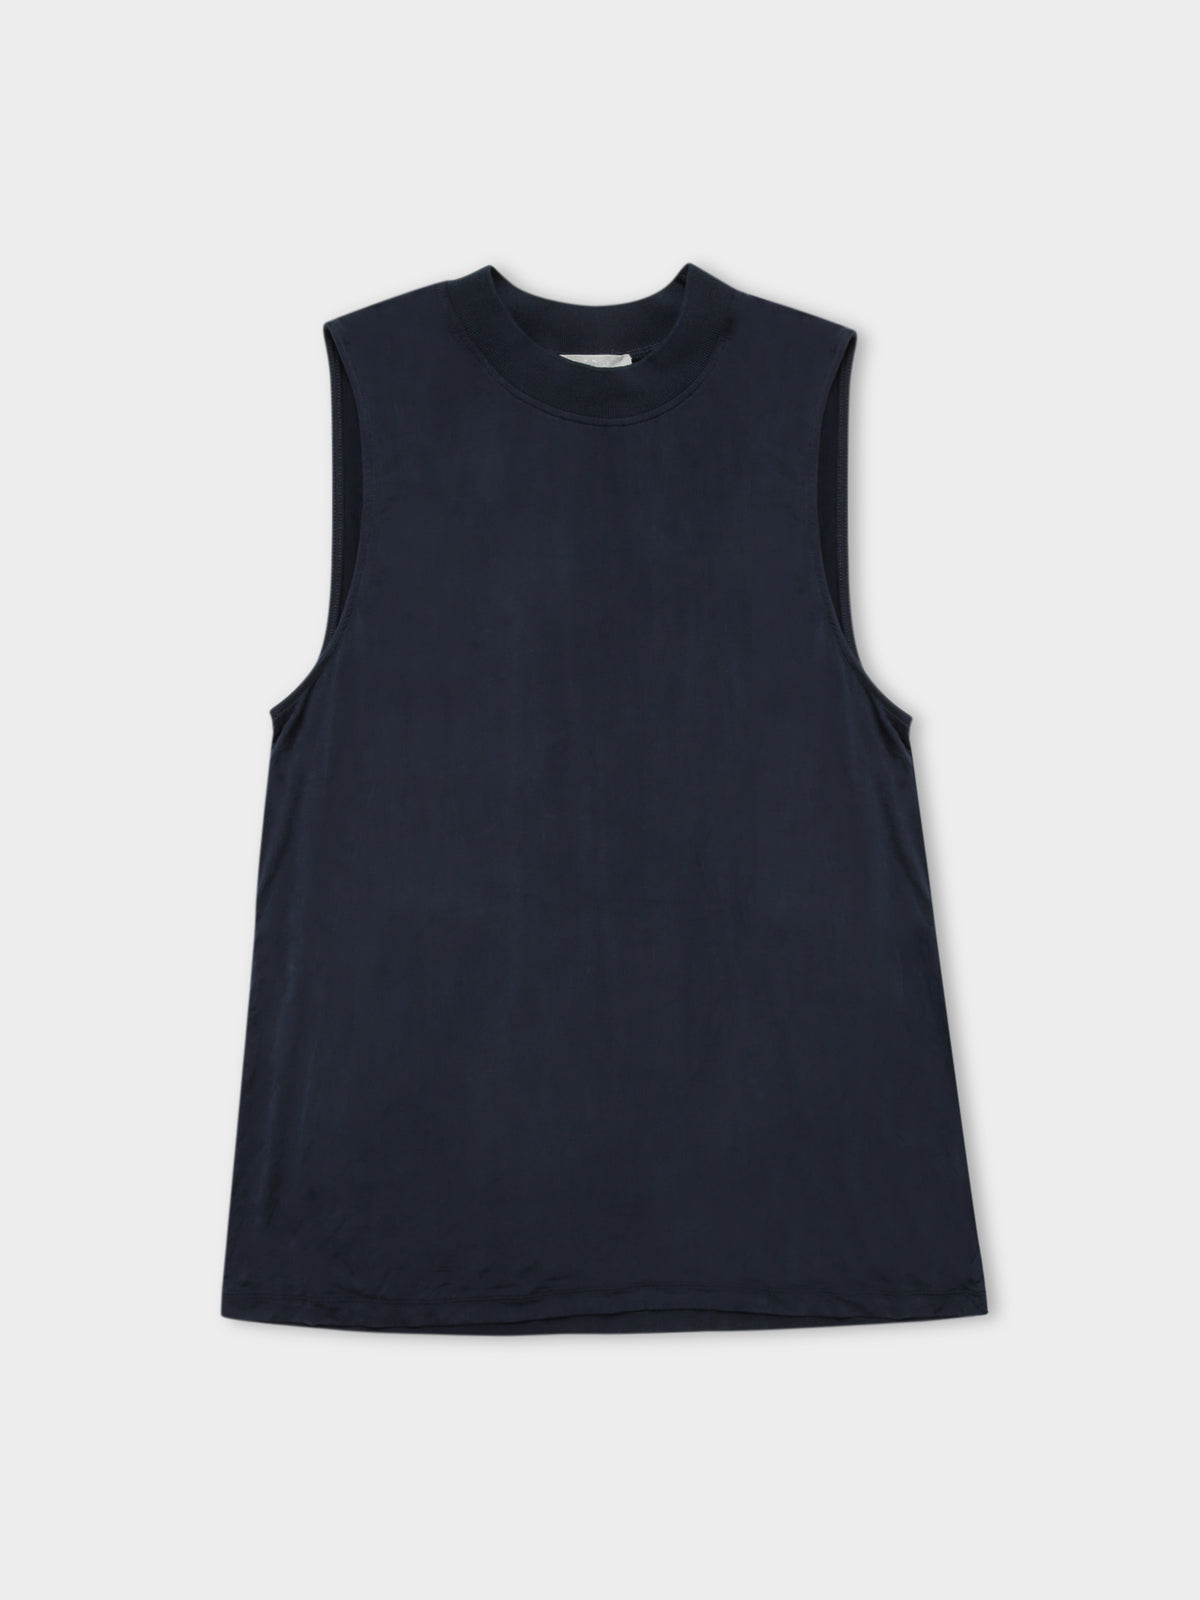 Locum Tank in Ink Blue